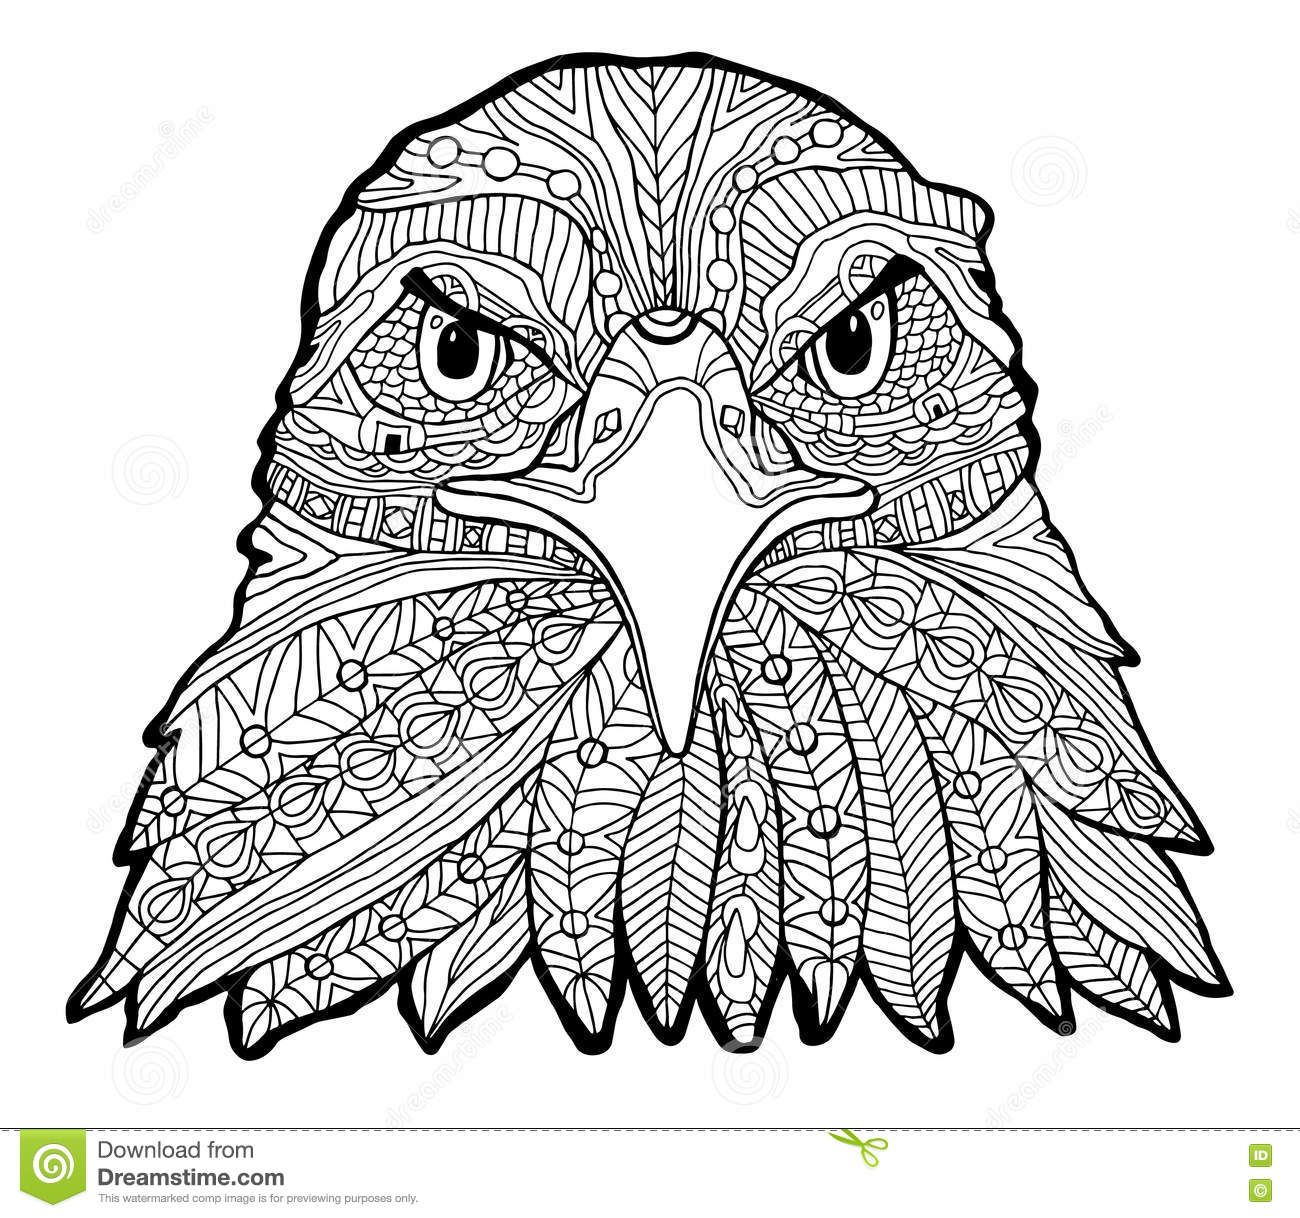 image result for printable eagle front view coloring pages